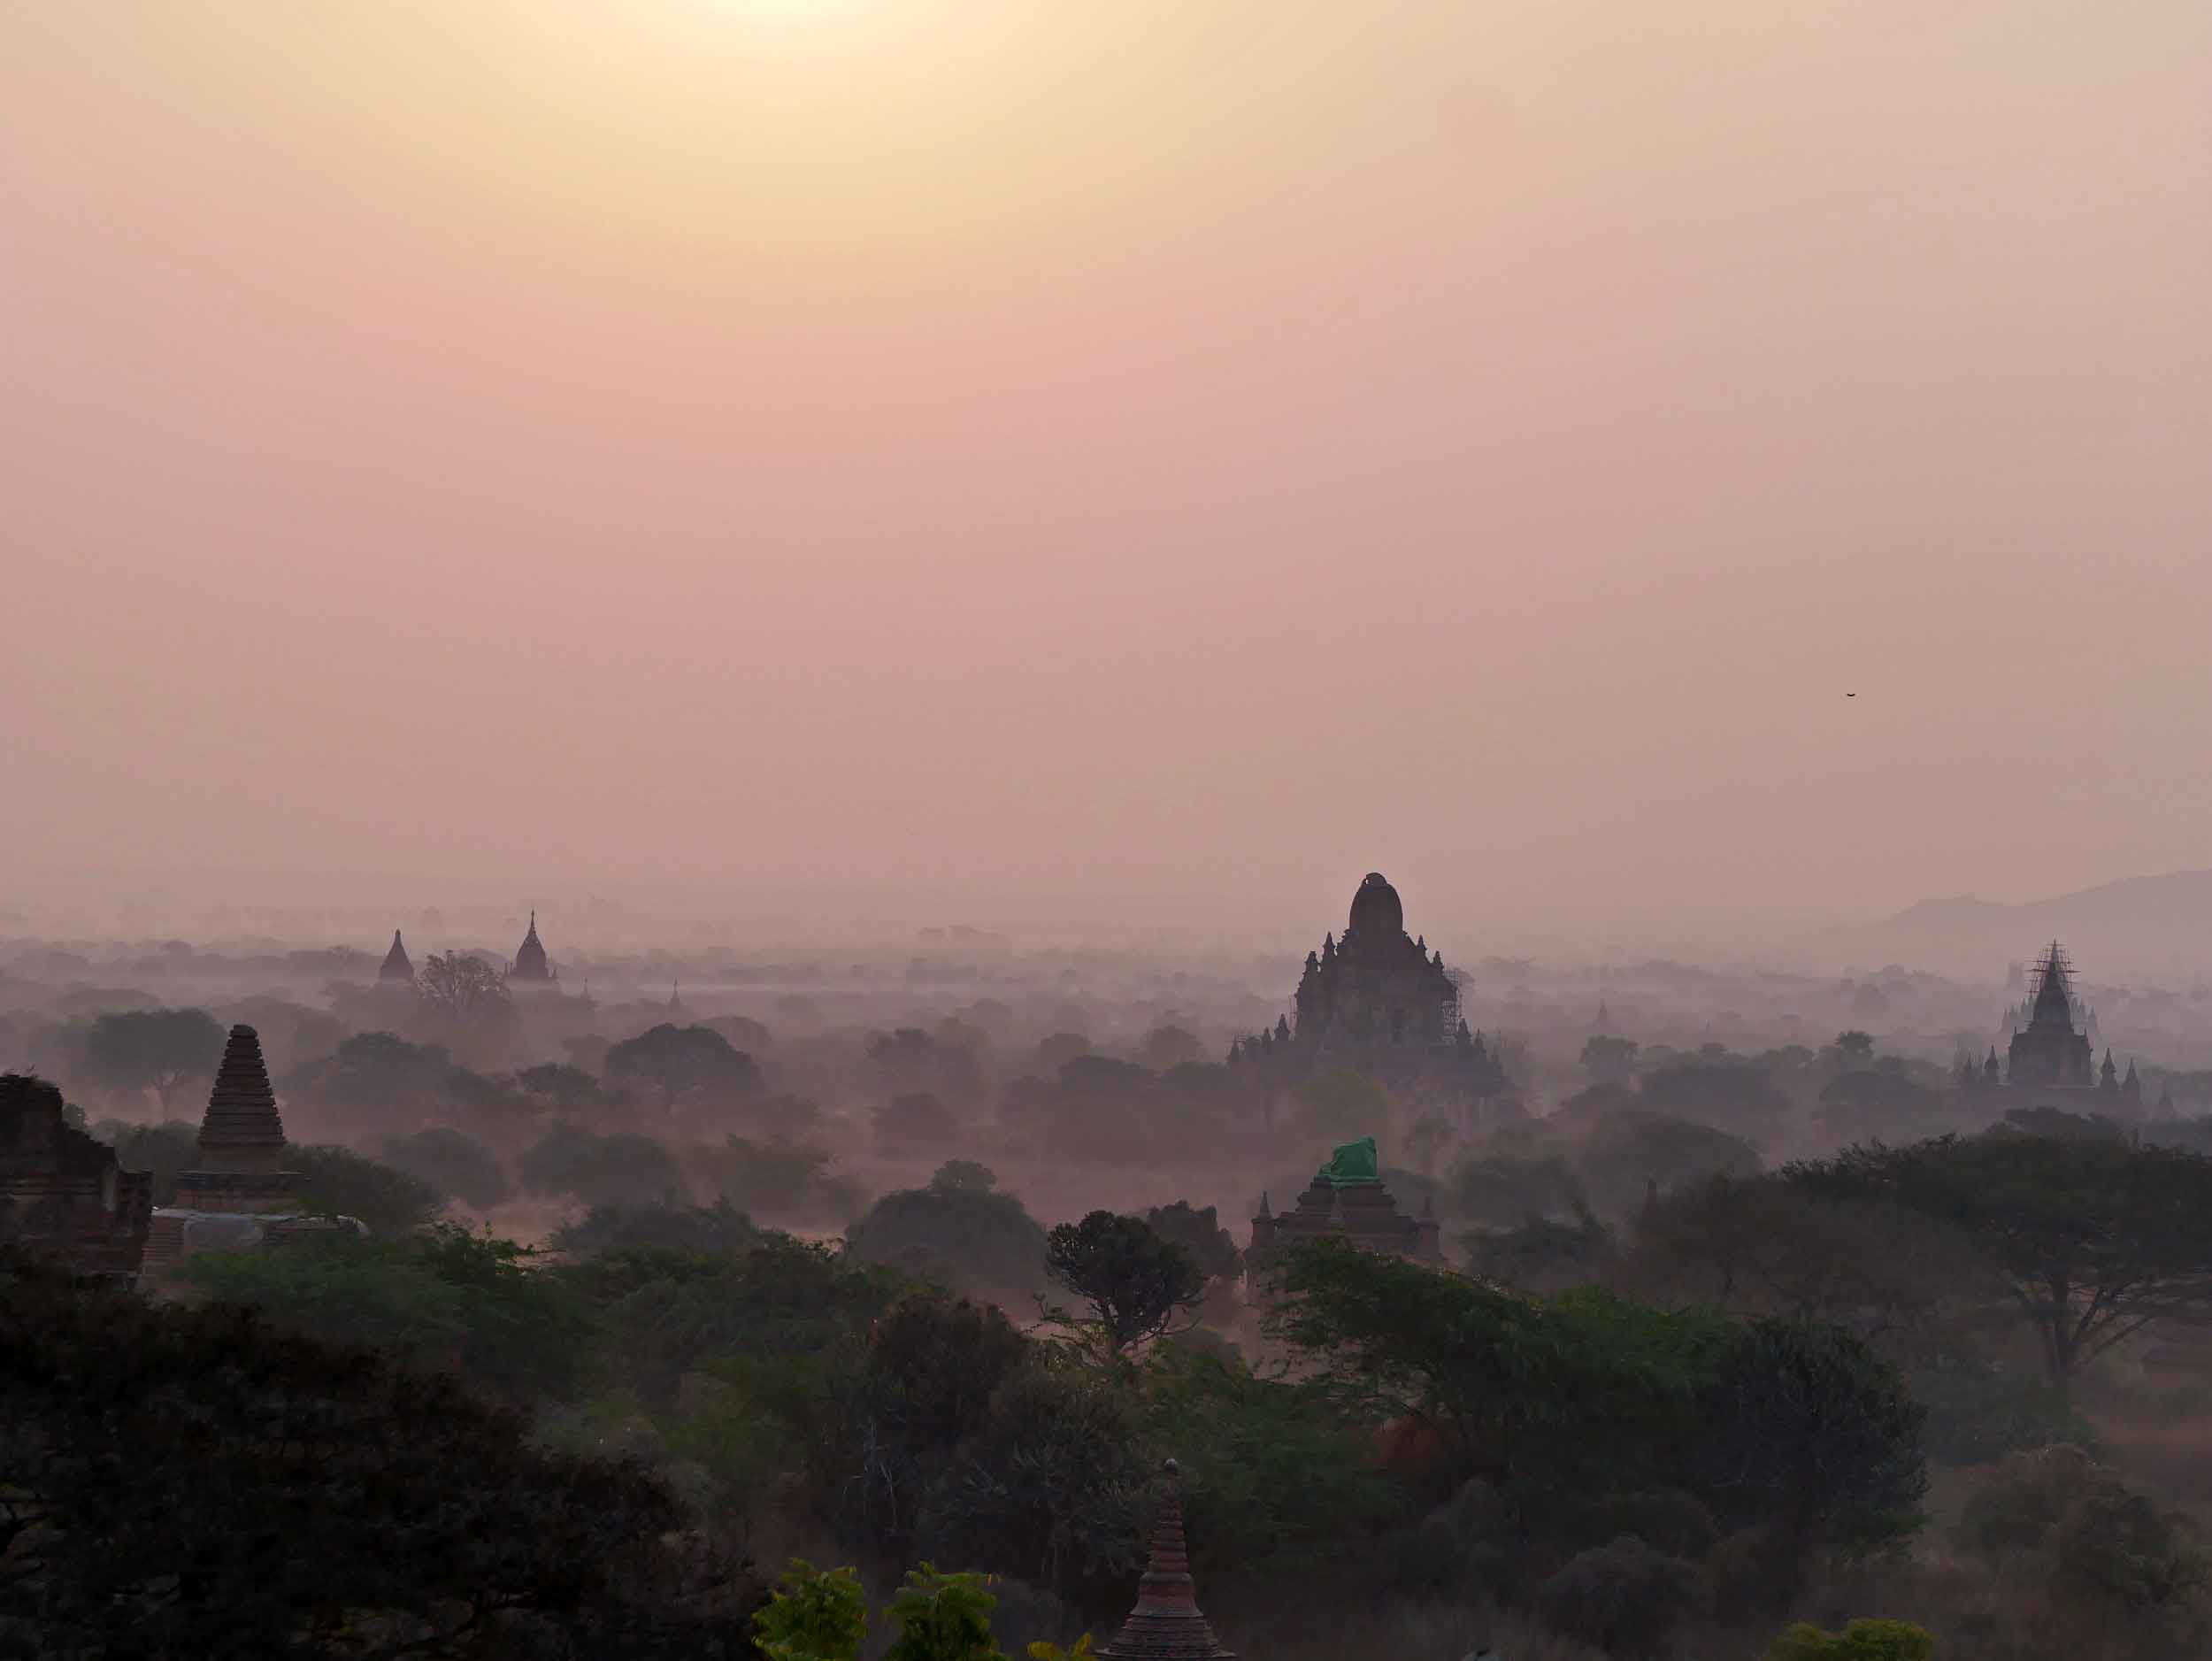 A must-do, visitors to Bagan depart early to climb atop crumbling temples and take in the majesty of sunrise (Feb 15).